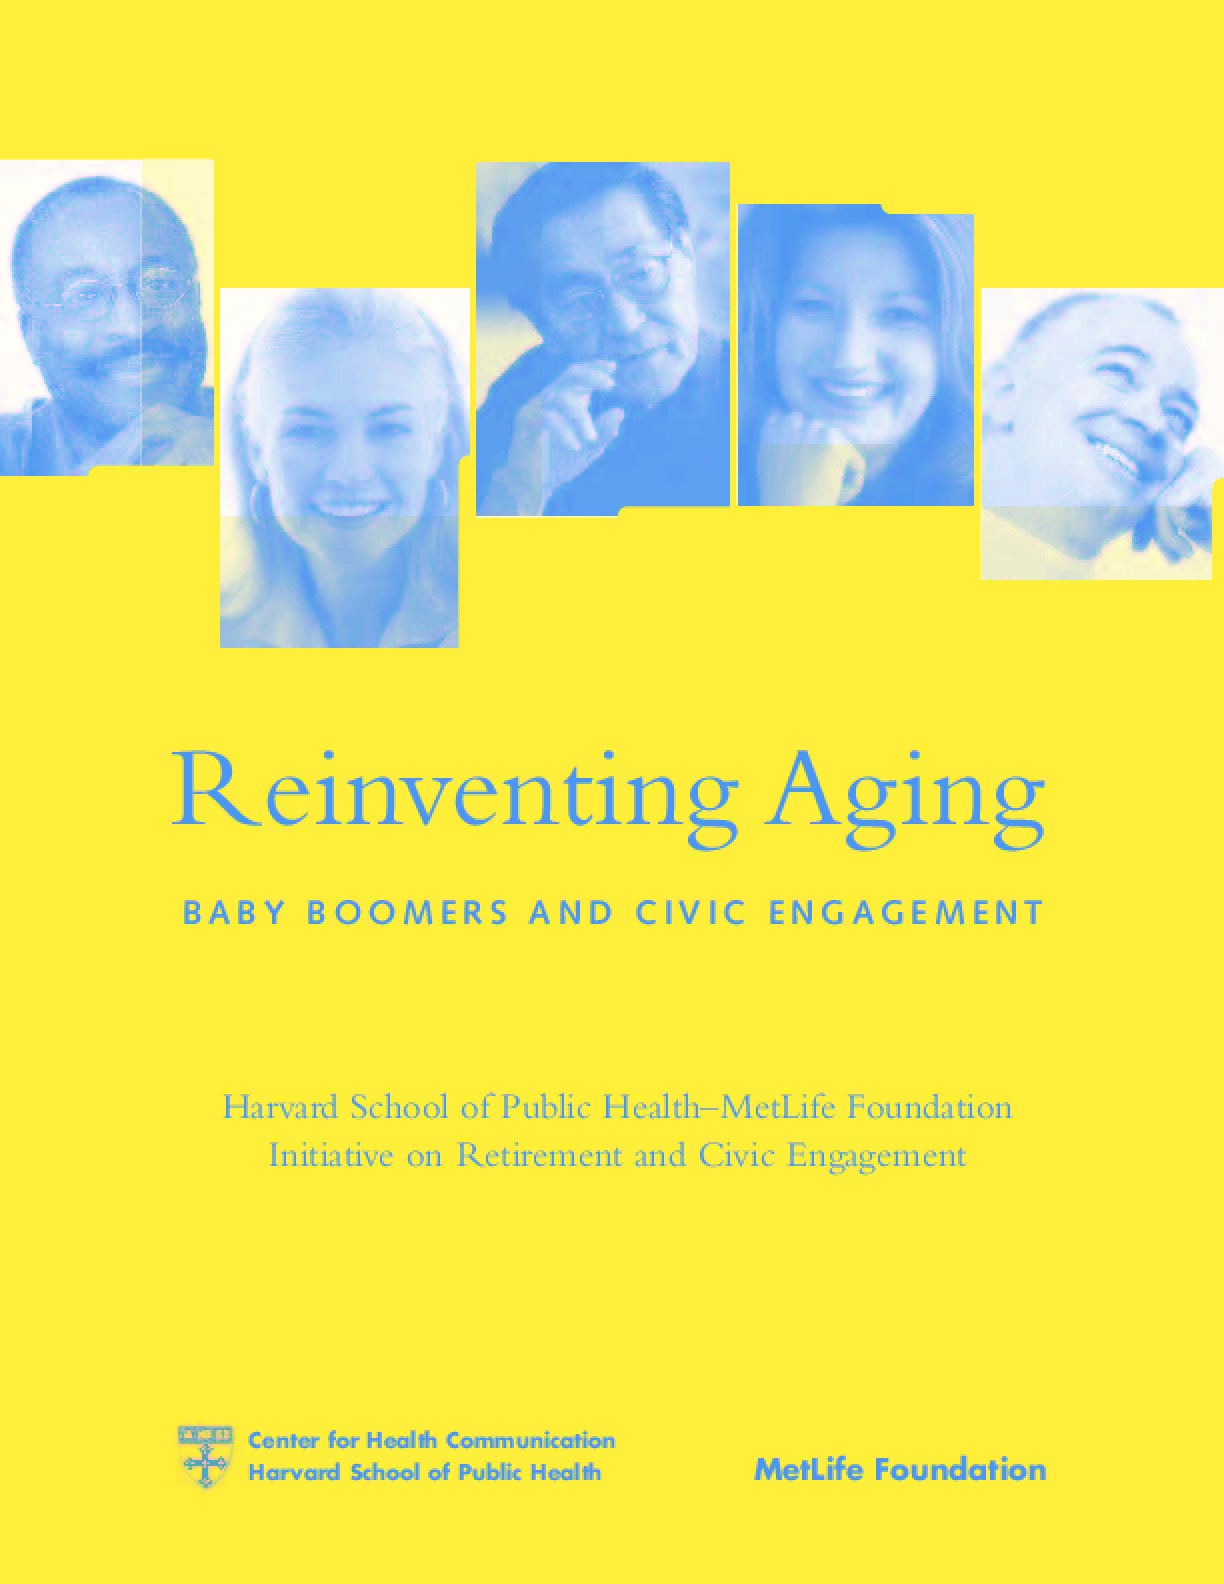 Reinventing Aging: Baby Boomers and Civic Engagement